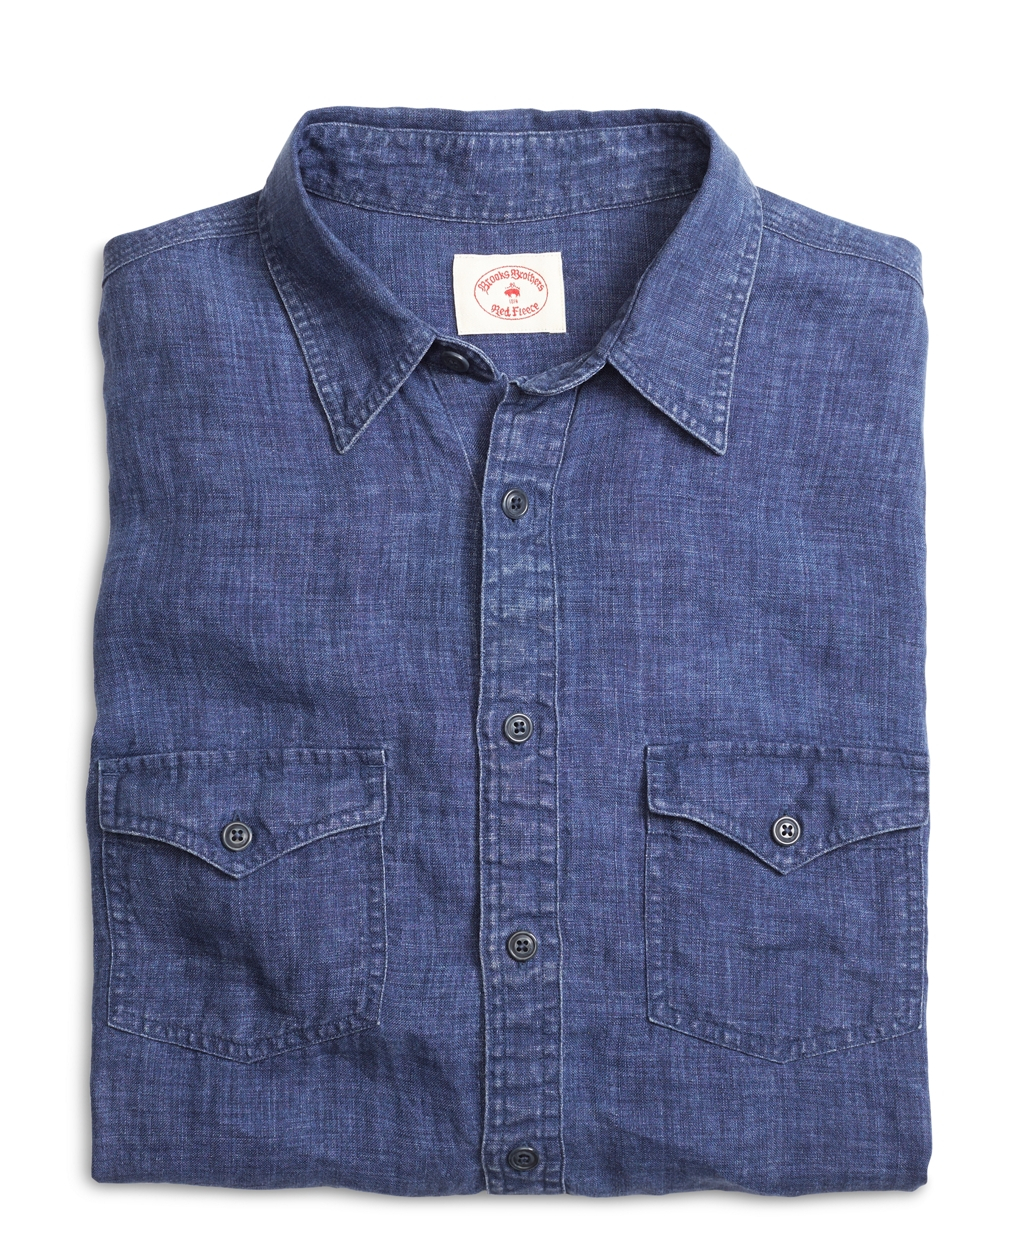 Brooks brothers linen sport shirt in blue for men lyst for Brooks brothers sports shirts